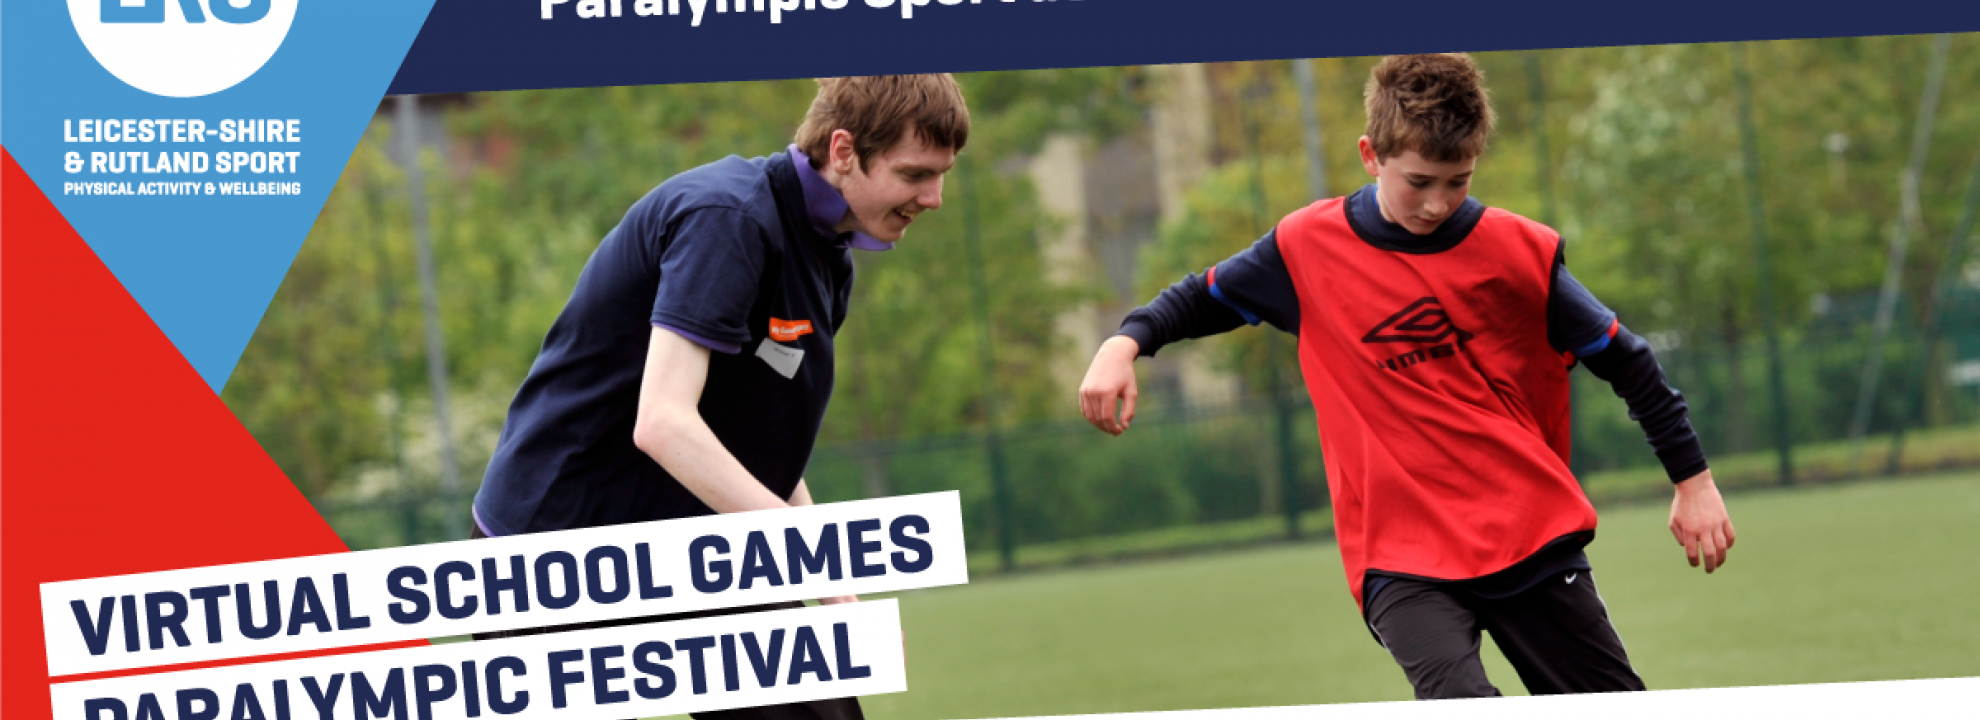 Virtual School Games Paralympic Festival Banner